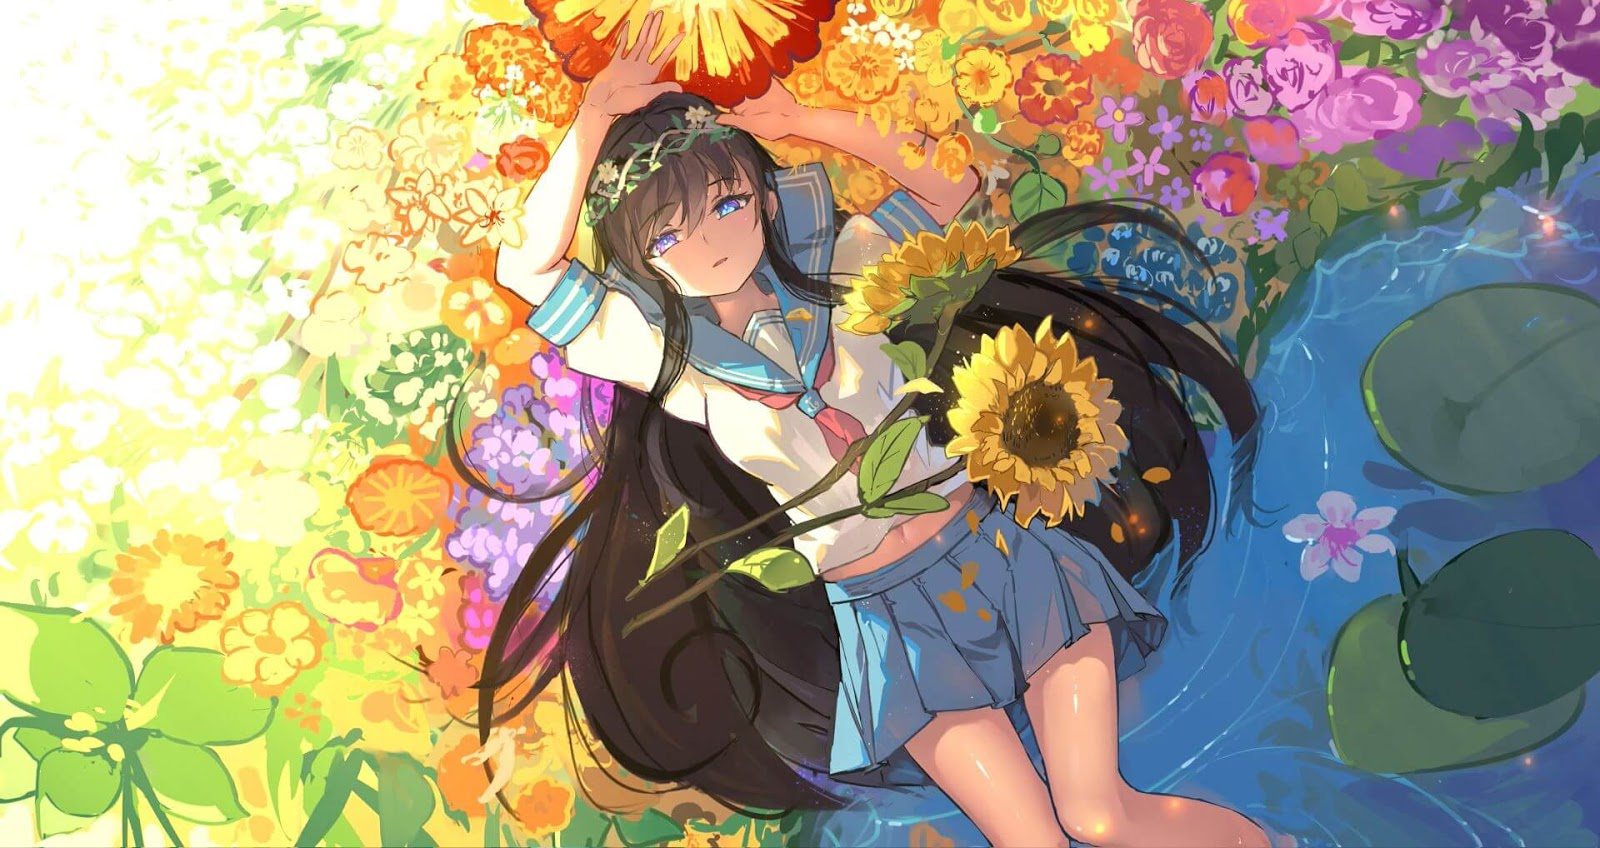 Flower Girl 花弁と女の子【4K】 [Wallpaper Engine Anime]